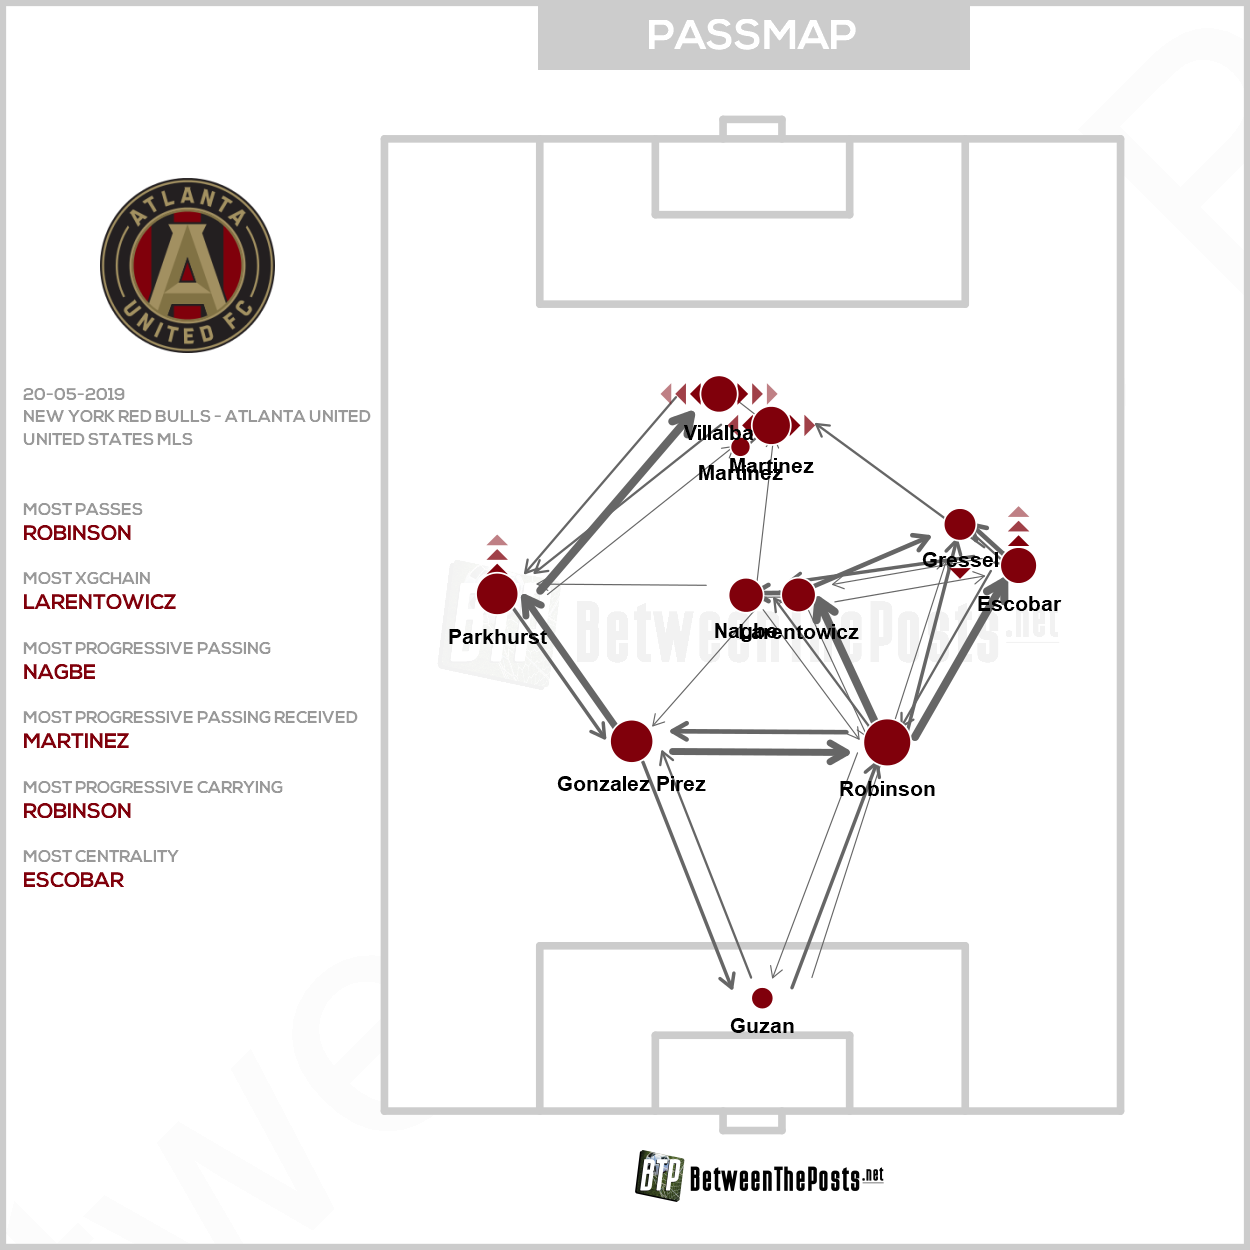 Passmap New York Red Bulls Atlanta United 1-0 MLS